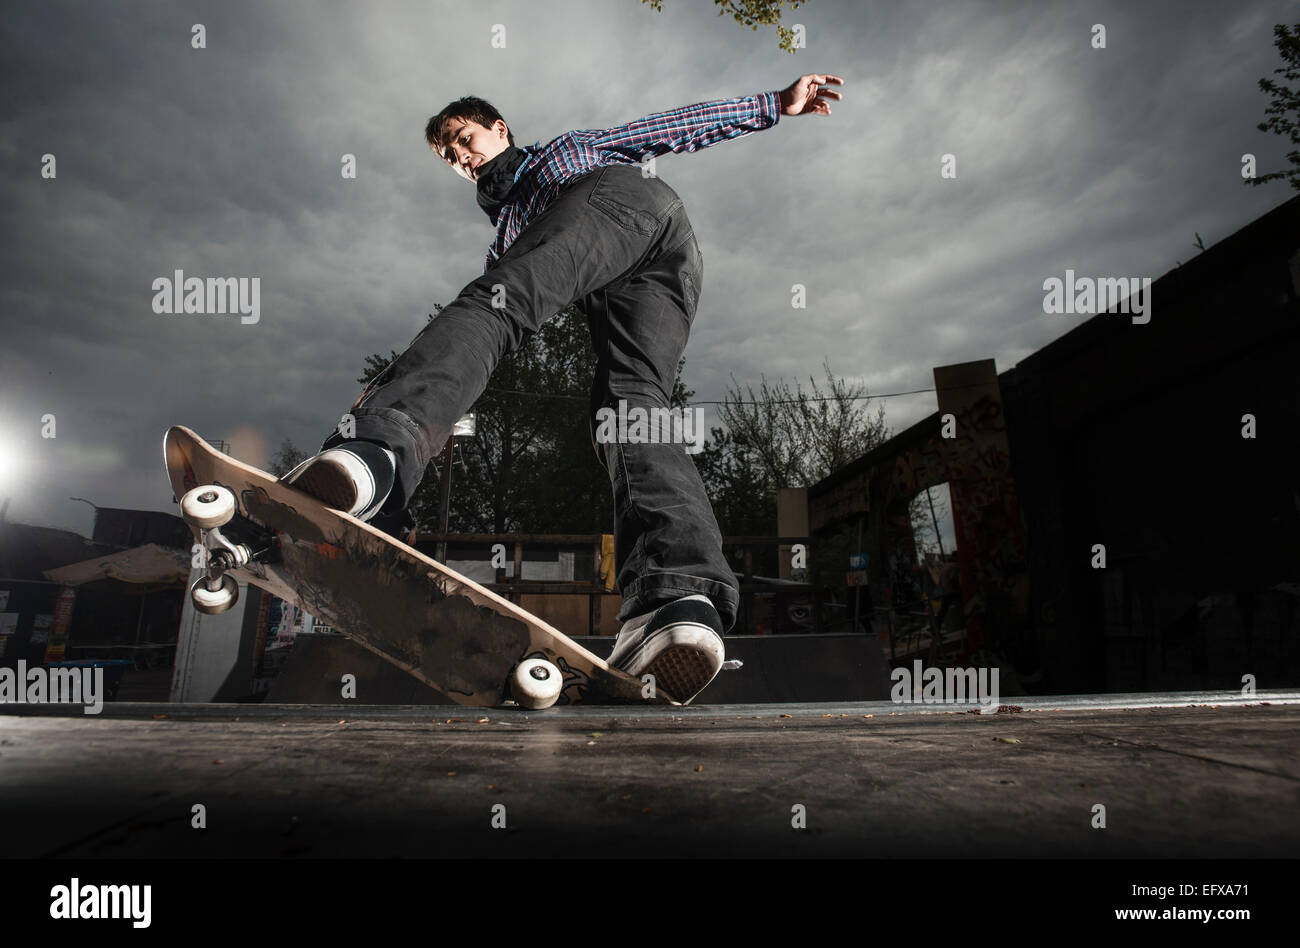 Skateboarding on mini ramp, 5-0 grind to fakie, Berlin, Germany - Stock Image